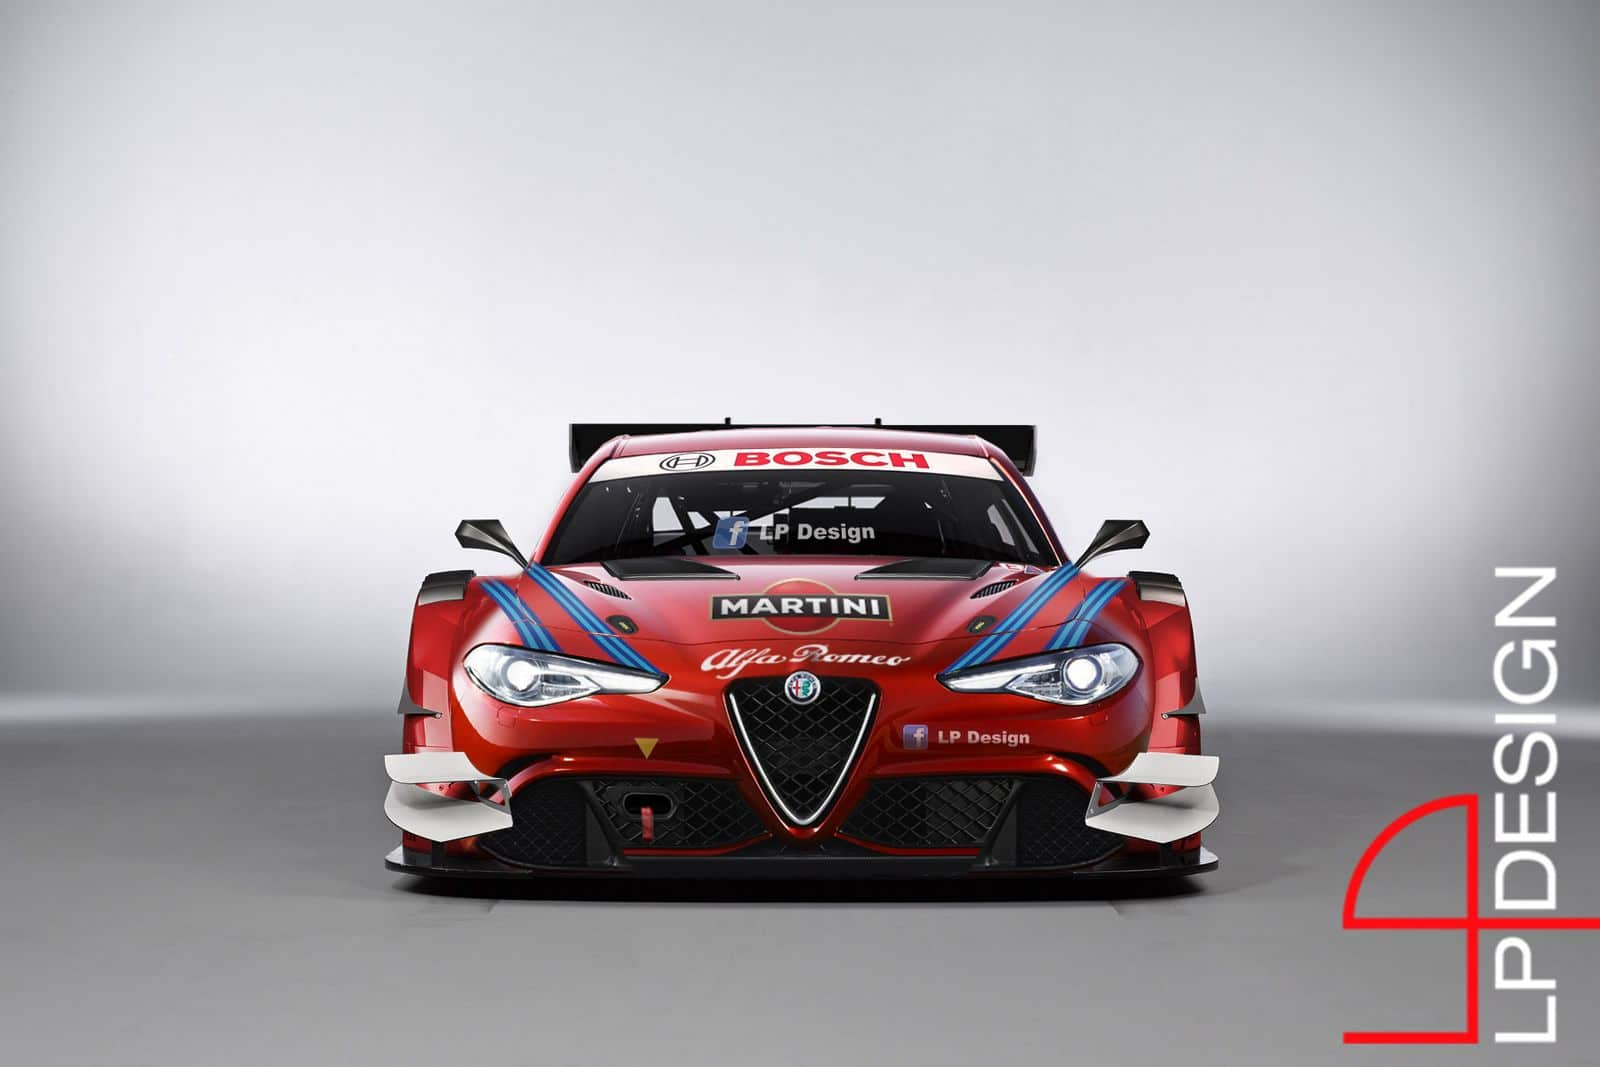 et si alfa romeo faisait son retour en dtm avec la giulia. Black Bedroom Furniture Sets. Home Design Ideas